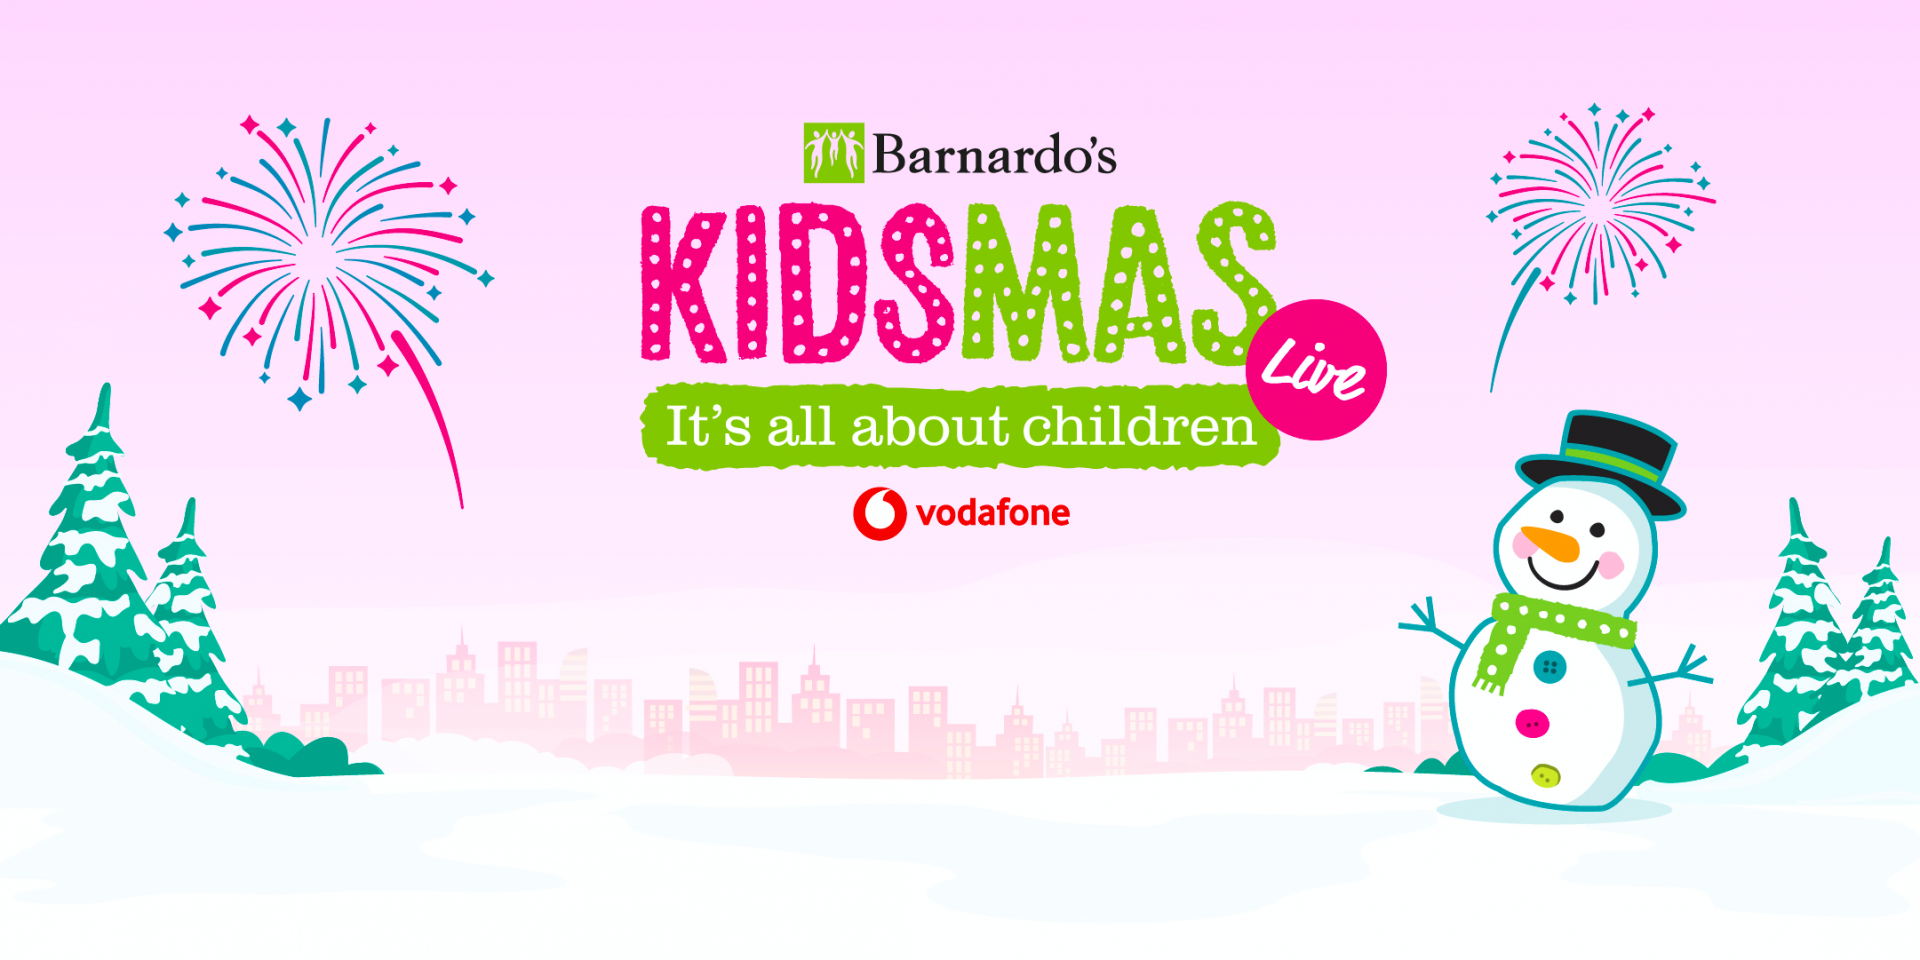 promotional image for Barnardo's Kidsmas Live sponsored by Vodafone UK